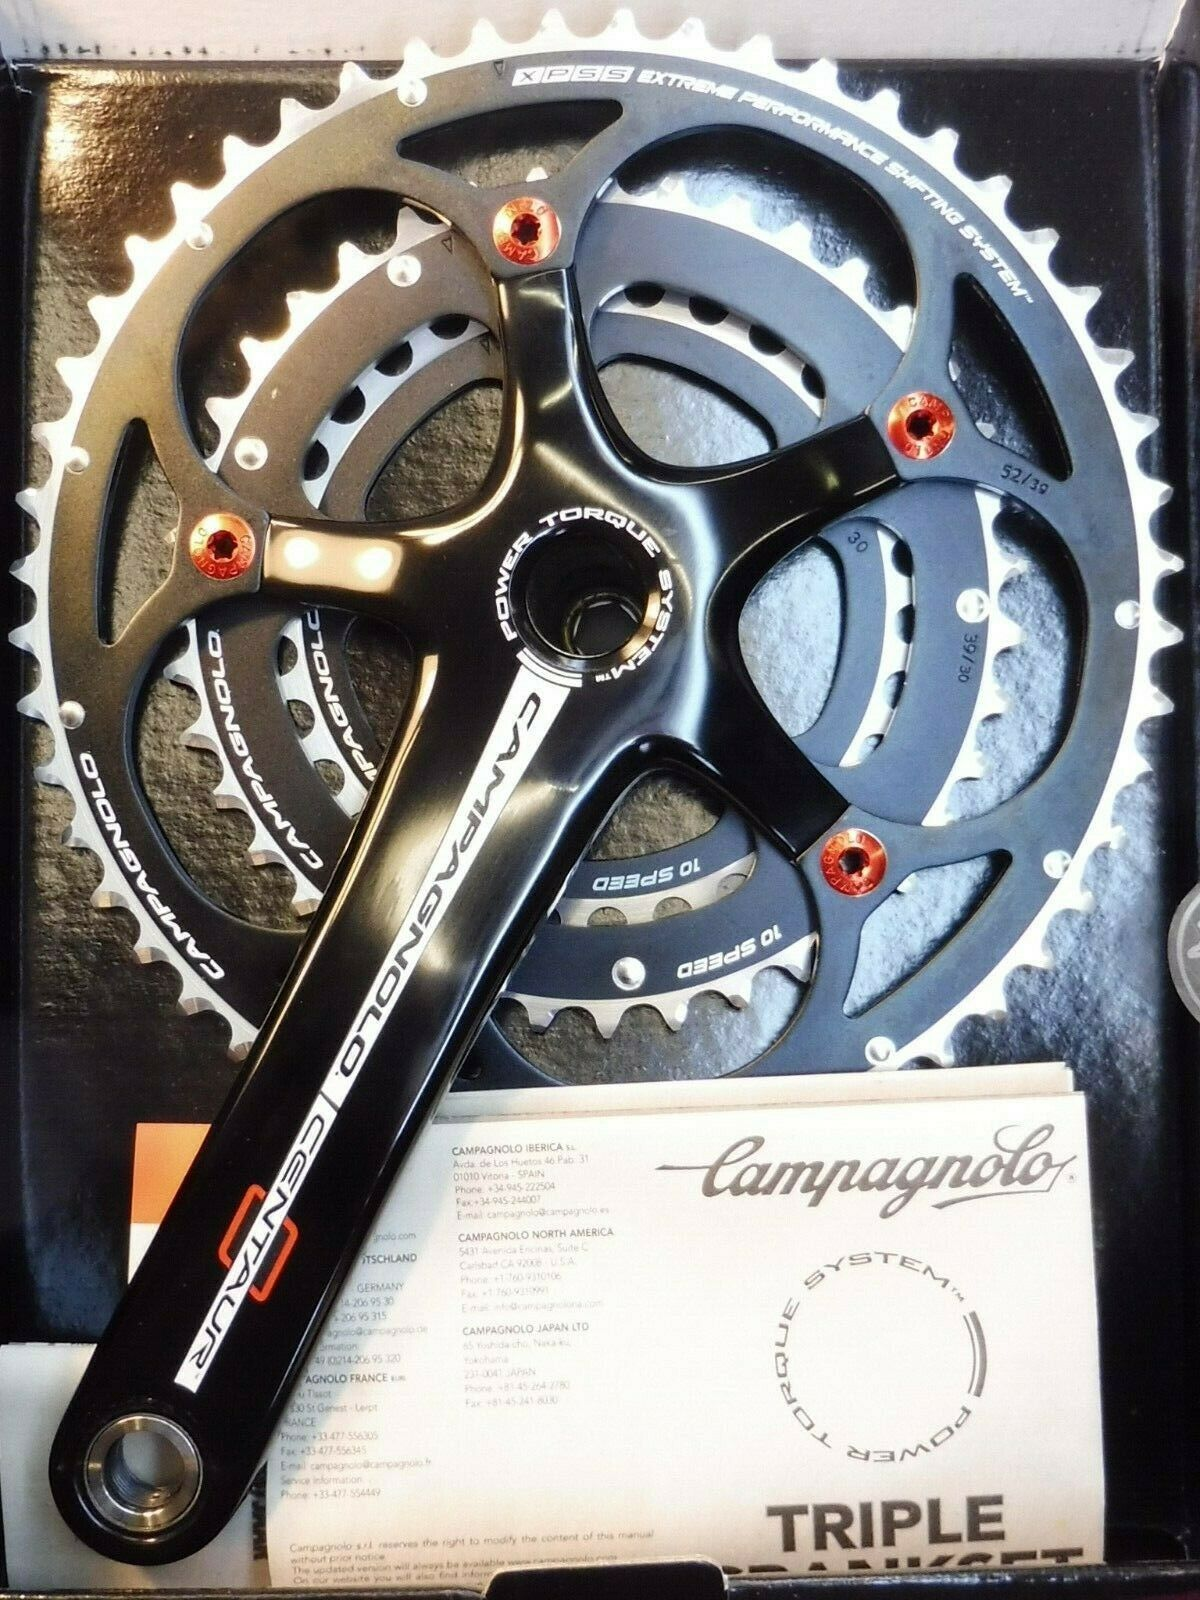 Campagnolo Centaur (B&R) Triple 10-speed Ketenset 175mm --30.39.50.fiets NOS